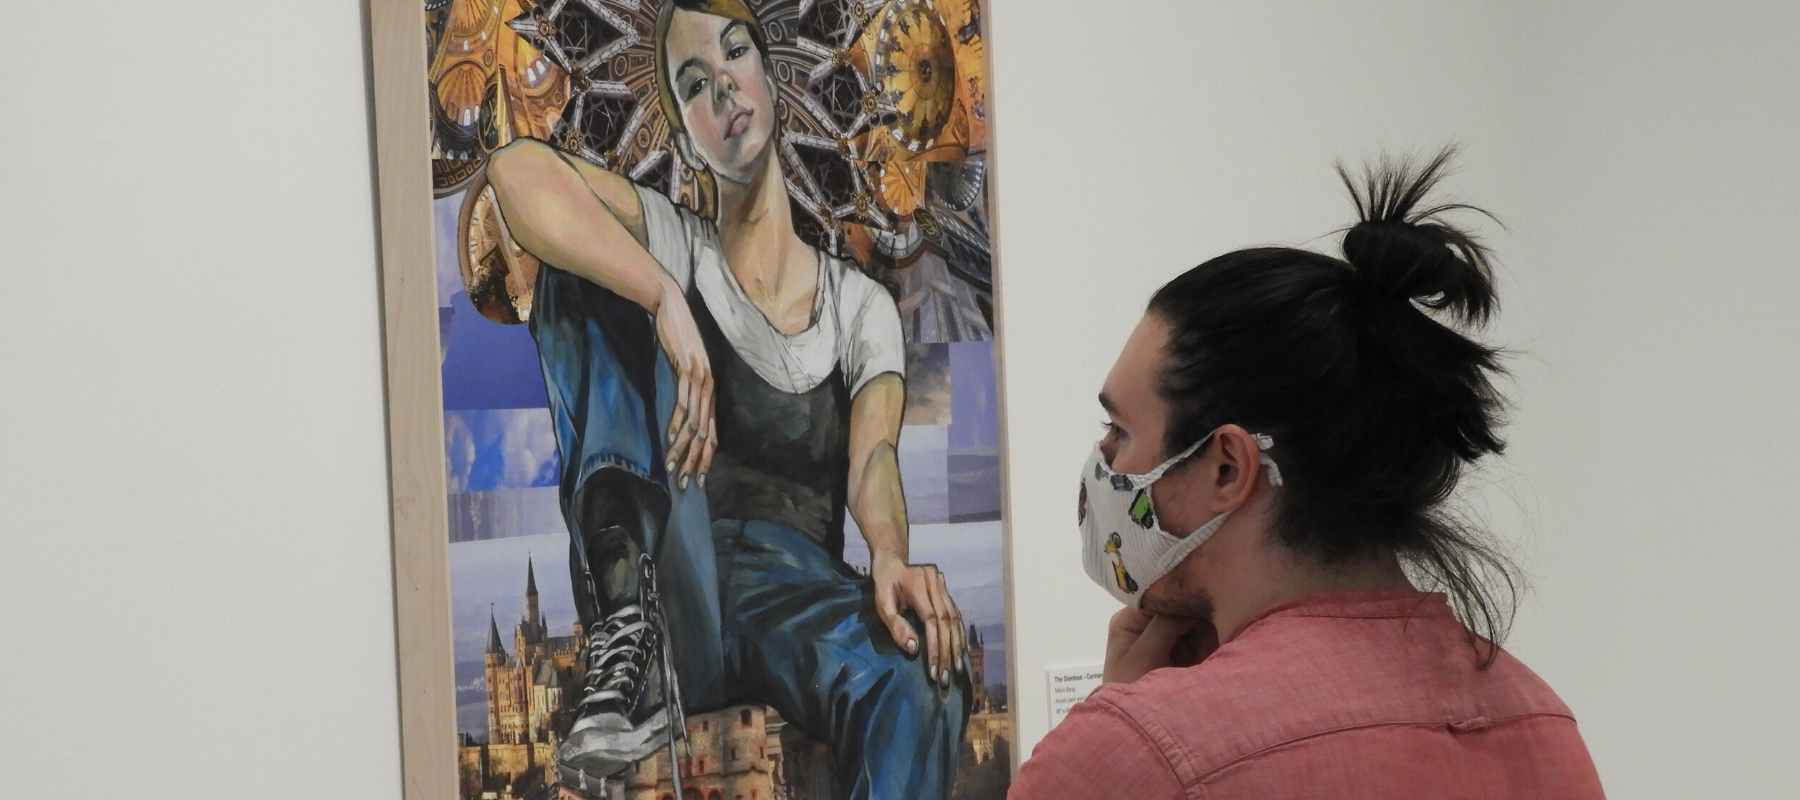 A person wearing a face mask views a painting on a gallery wall.